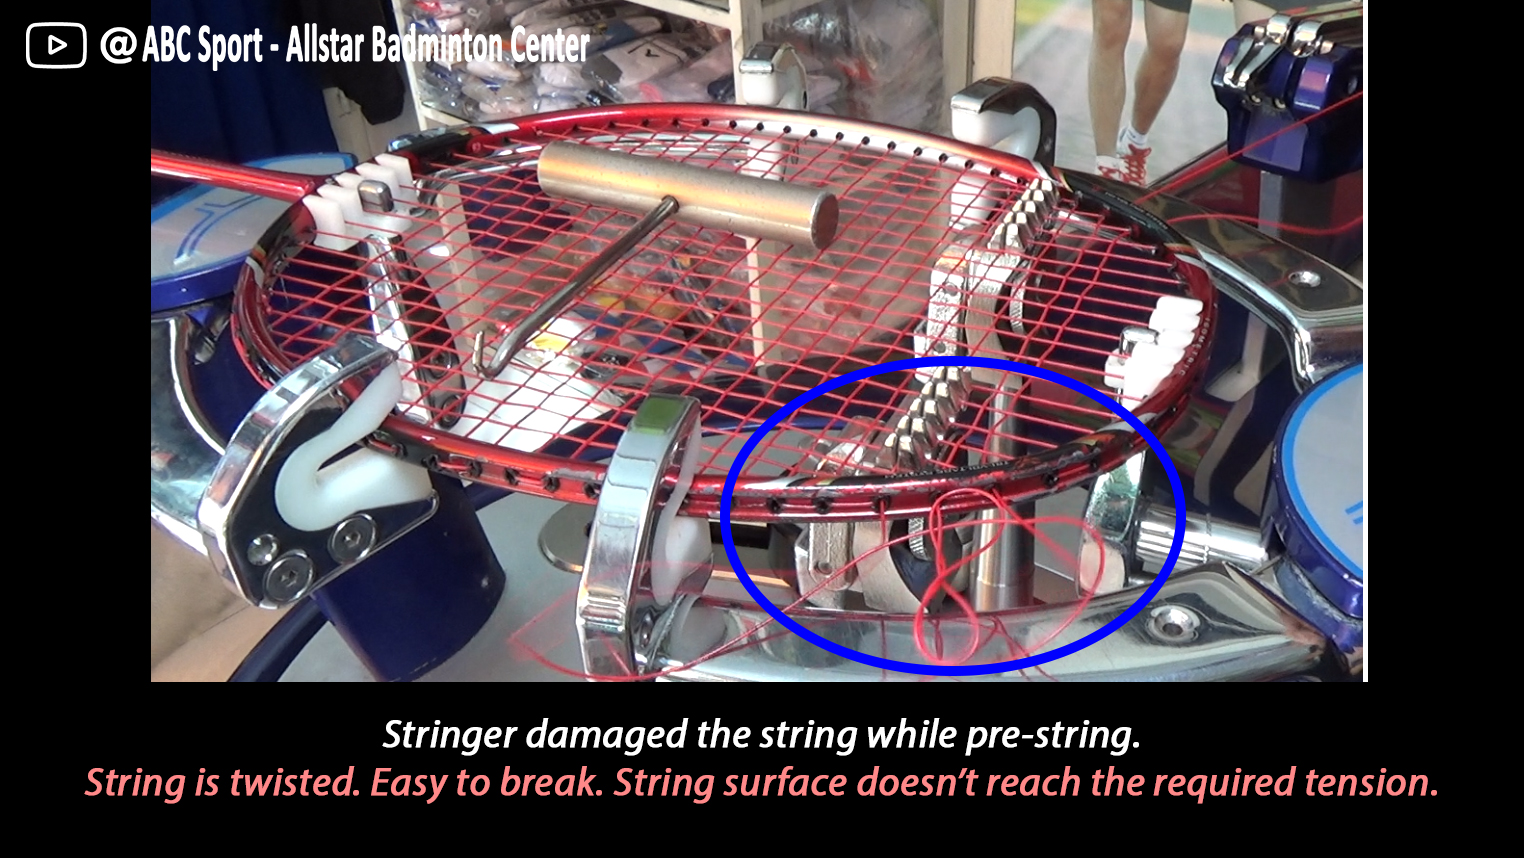 stringer damaged the string while prestring. string is twisted. Easy to break. String surface doesn't reach the required tension